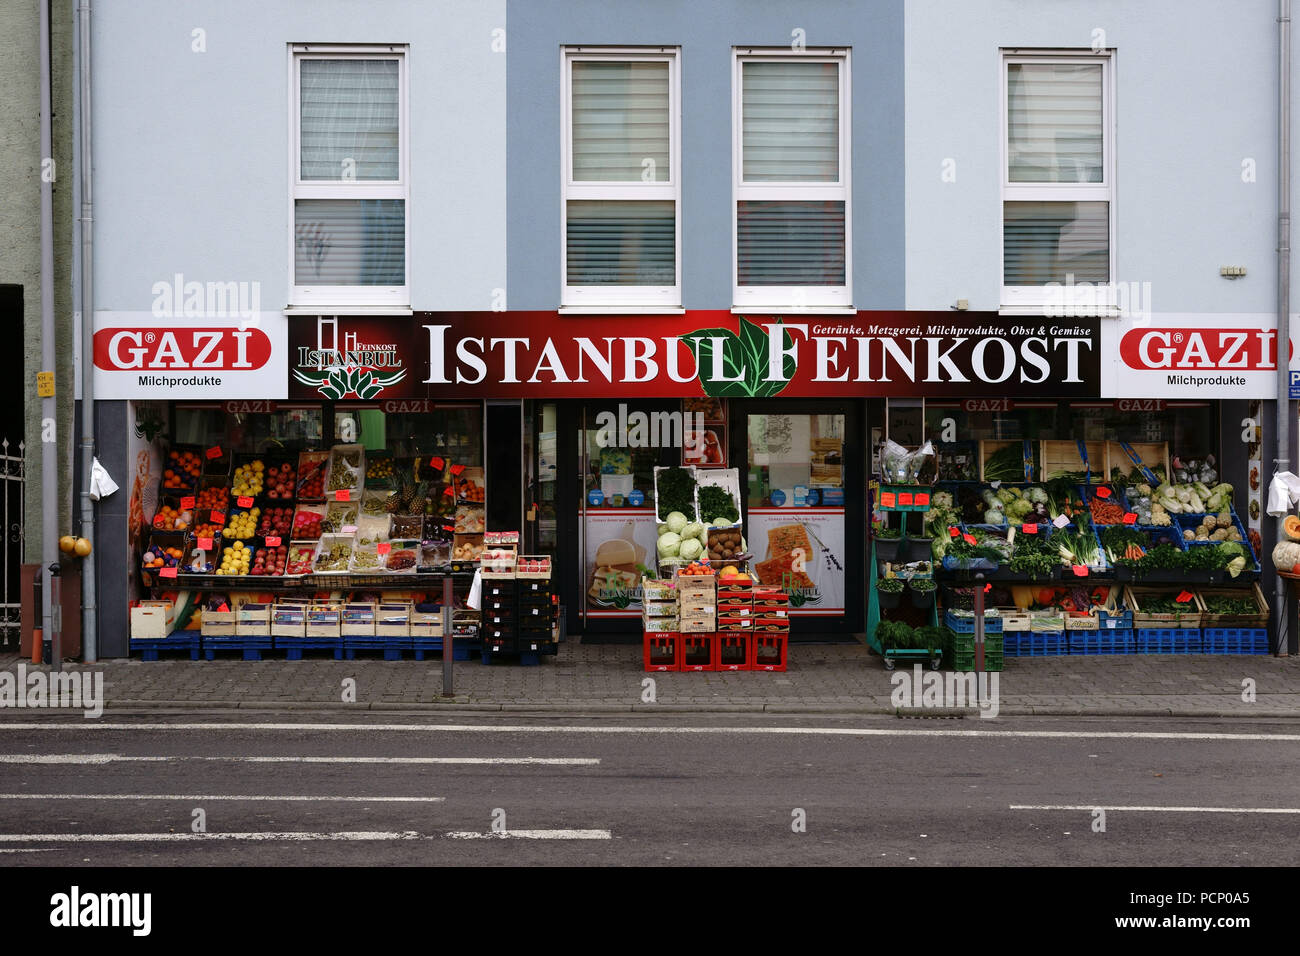 The stalls of fruit and vegetable of the fruit and vegetable trader 'Istanbul Feinkost' in Griesheim. - Stock Image